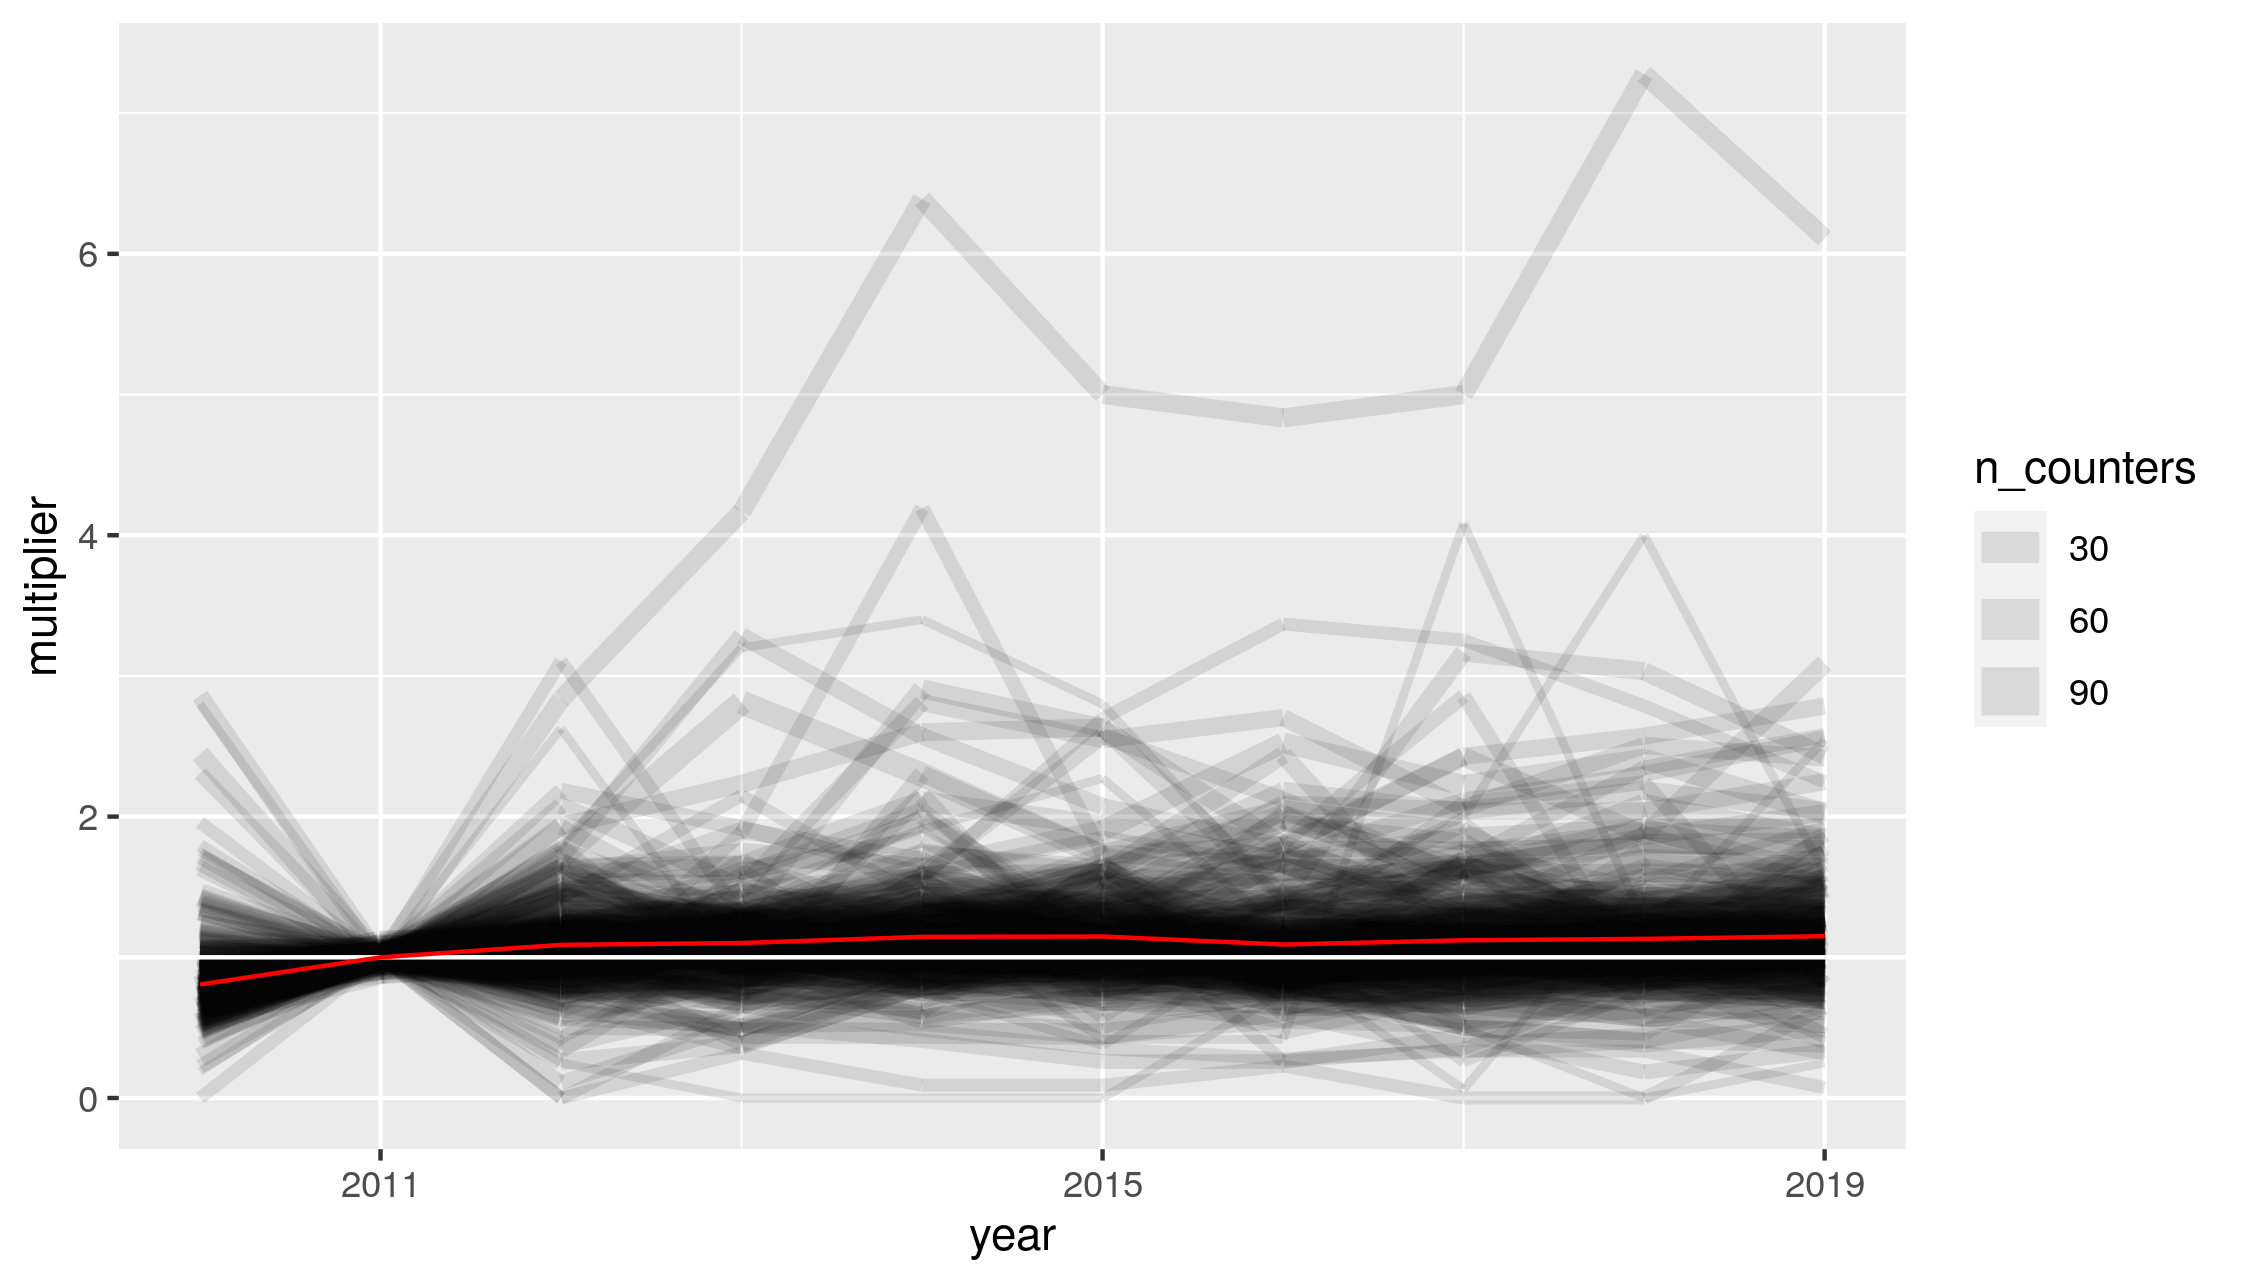 Cycling uptake estimates for all local authorities in Great Britain. Black line width represents the number of counters in each local authority, the white line represents no cycling uptake, and the red line is the weighted mean for all cycle counters from 2010 to 2019.